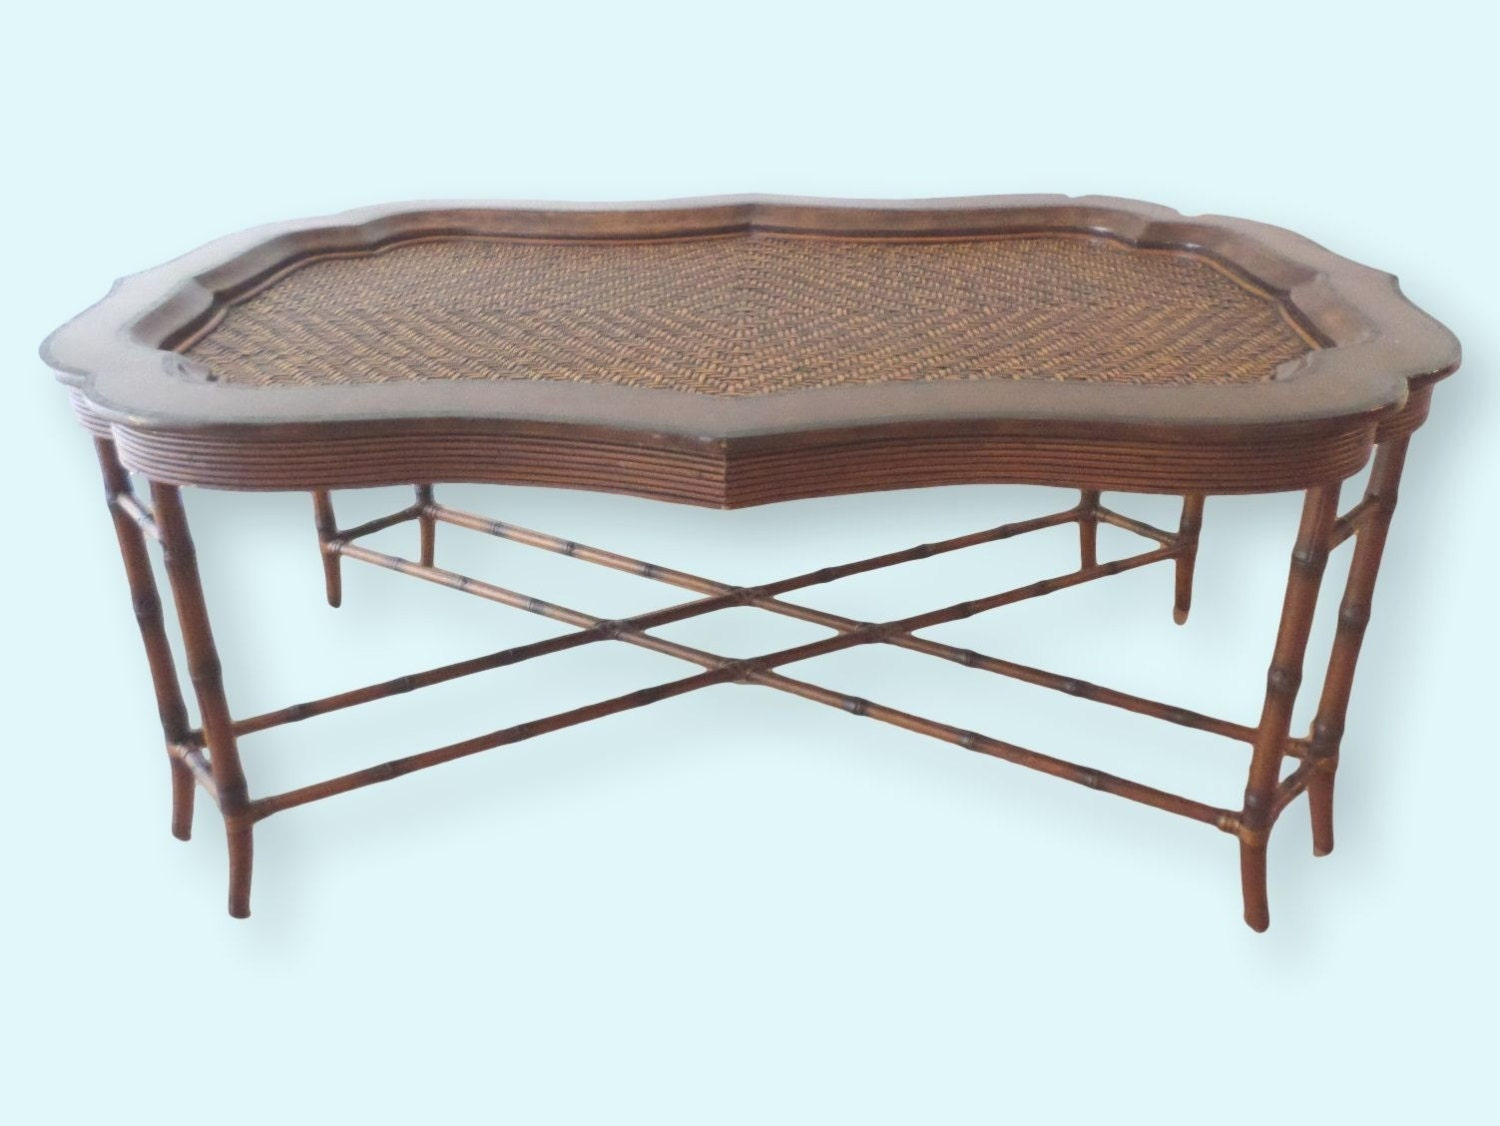 Vintage Maitland Smith Faux Bamboo Rattan Coffee Table With Leather Bordered Tray 58 X 36 X 22